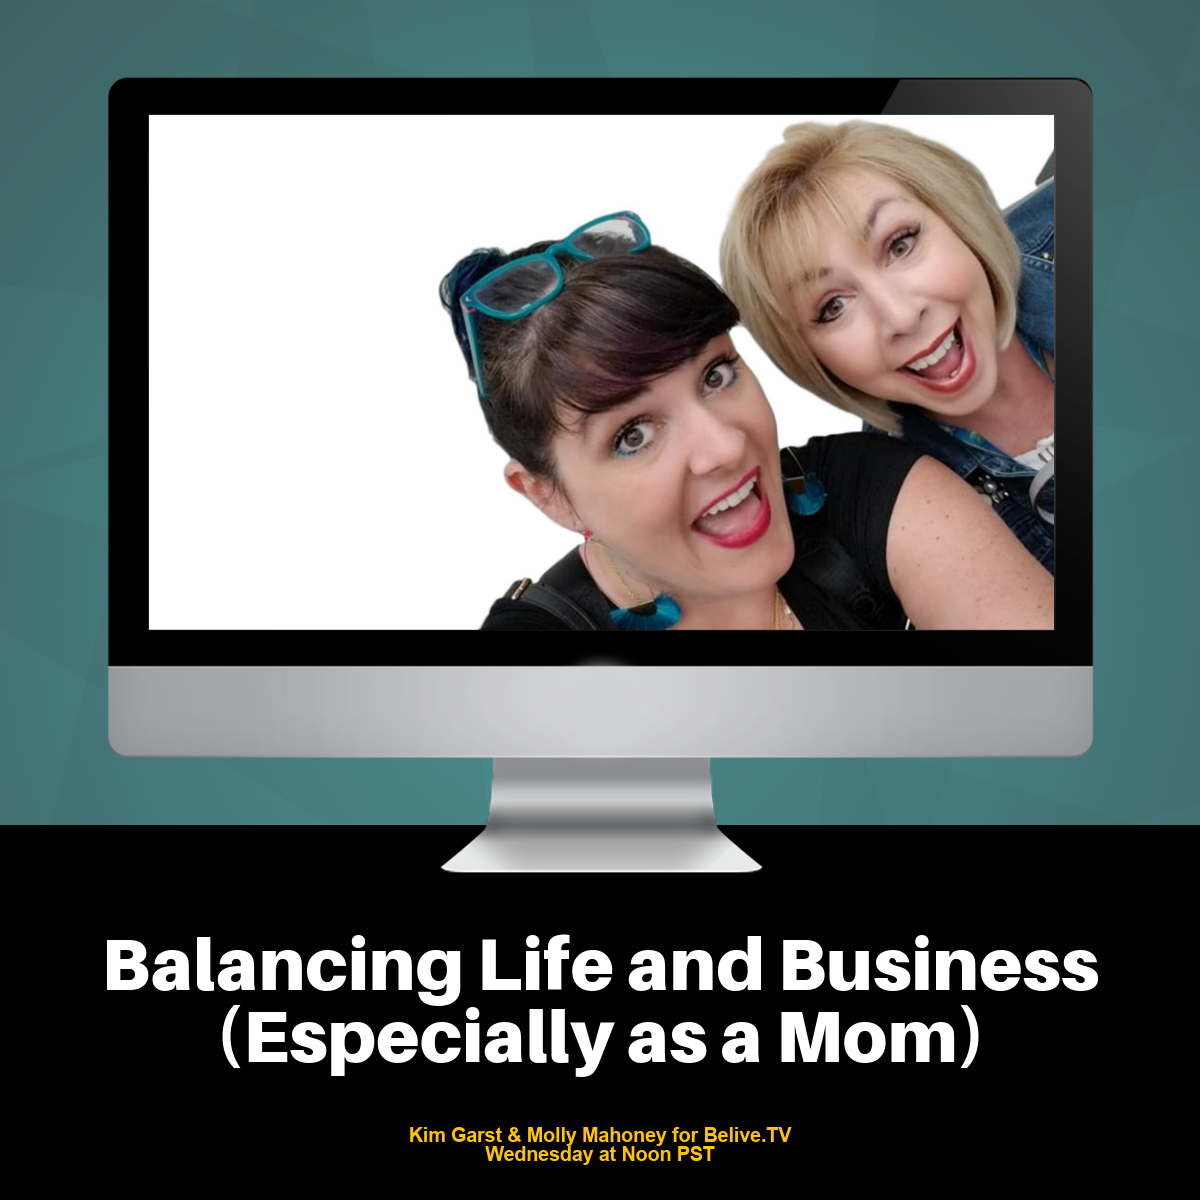 Balancing Life and Business (Especially as a Mom)